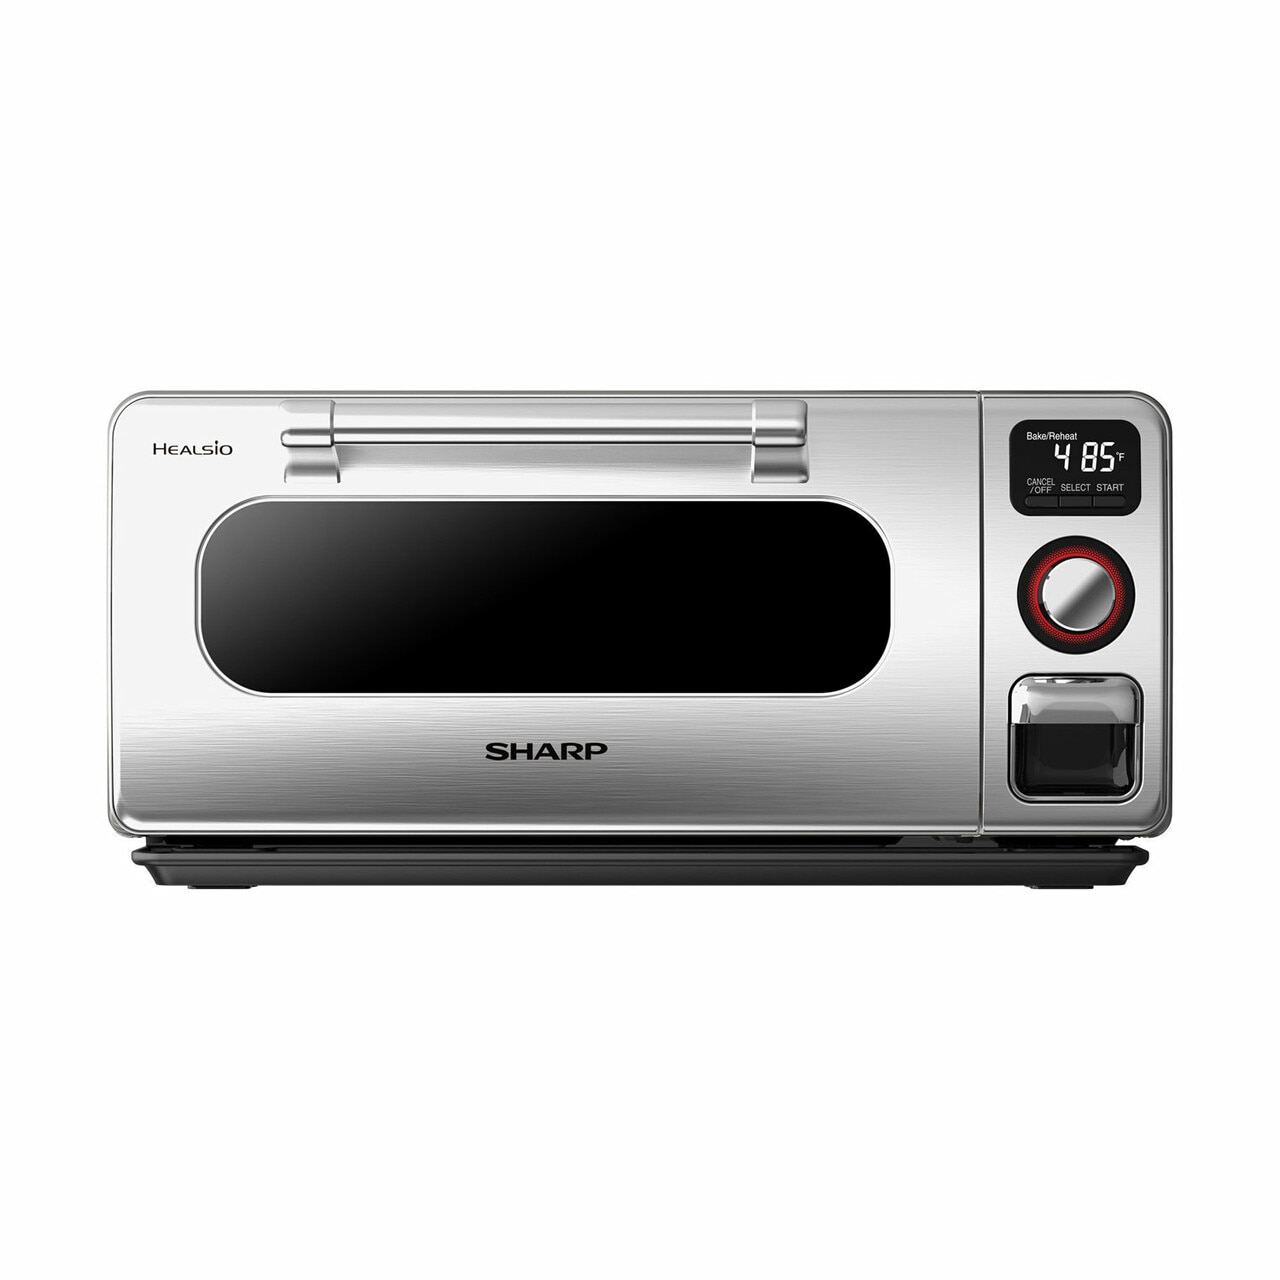 Sharp Superheated Steam Countertop Oven (SSC0586DS)